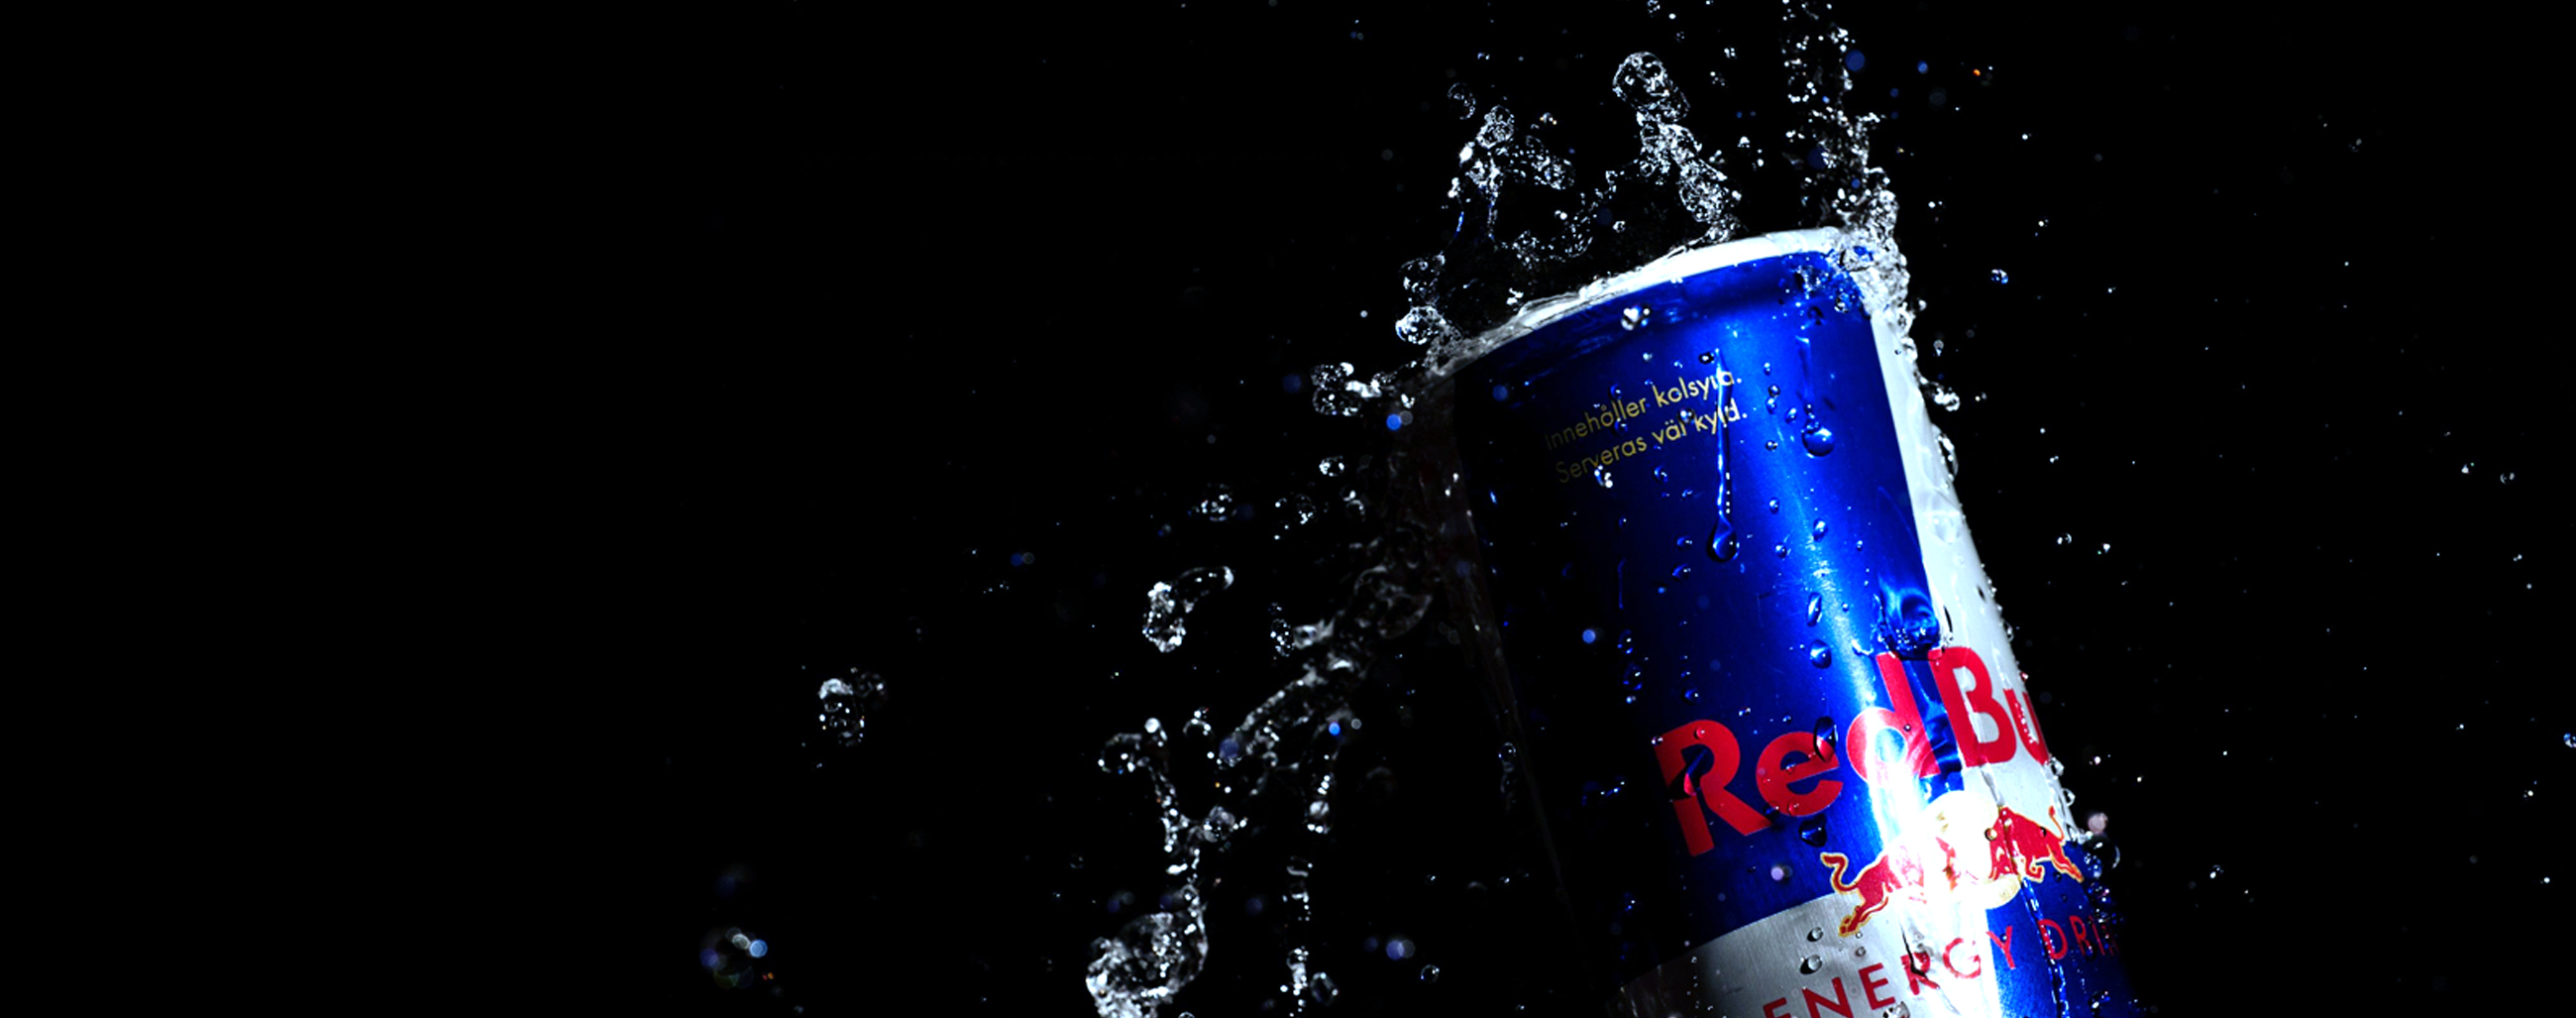 Red Bull Energy Drink Importer & Distributor